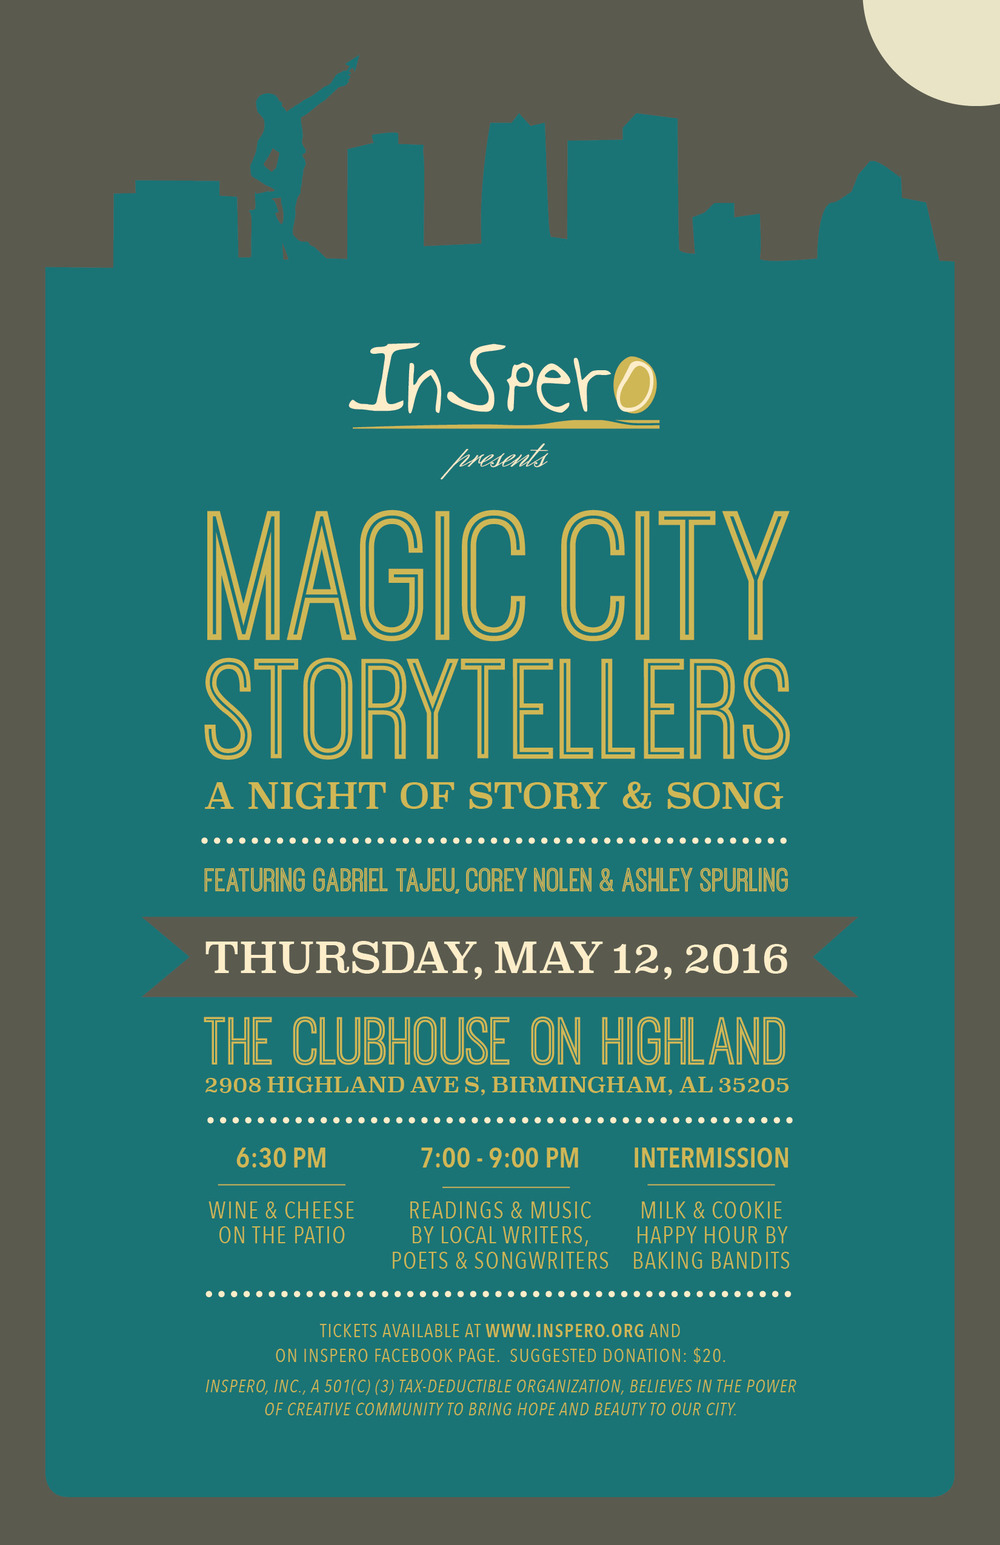 Entertainment that Expands the Soul: Magic City Storytellers